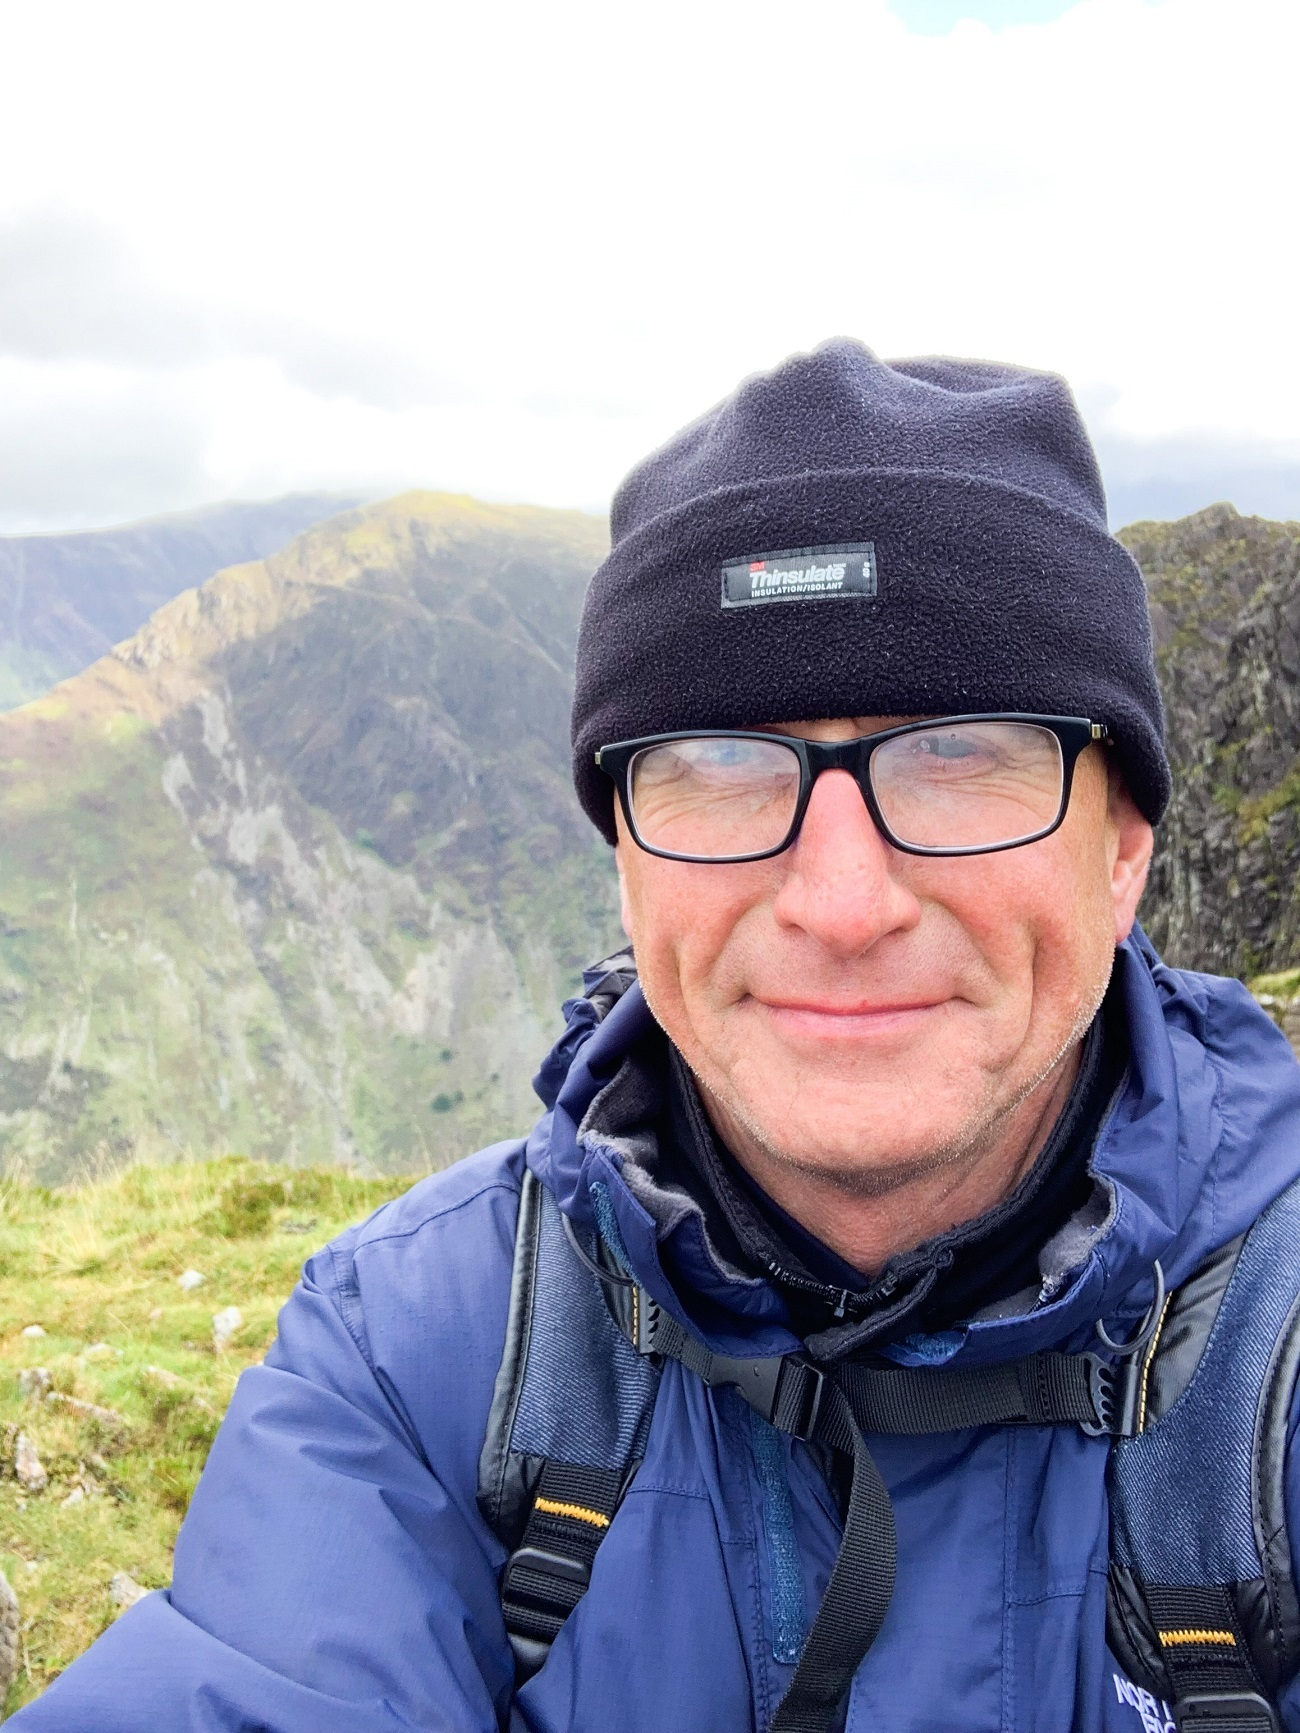 Bridport resident to take on Scafell Pike, England's highest mountain